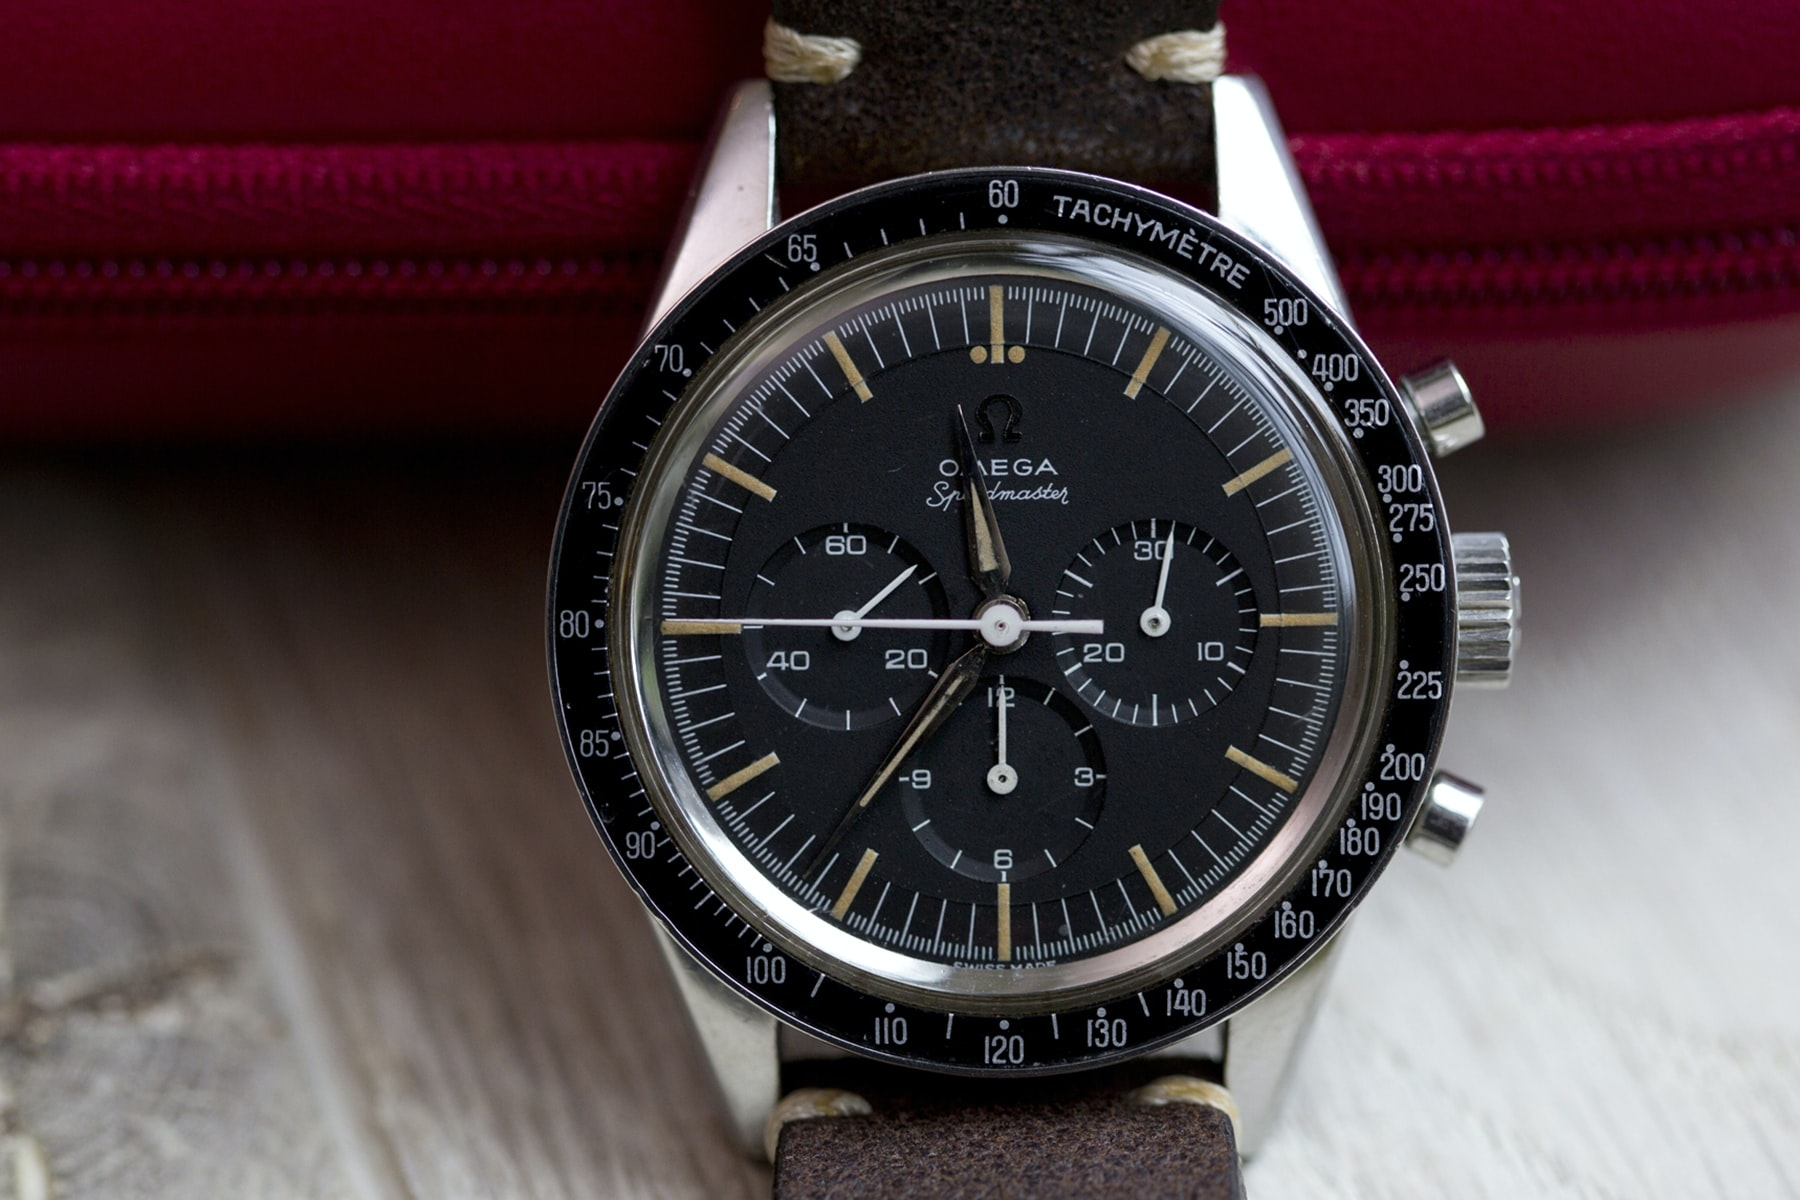 A Week On The Wrist: The Omega Speedmaster 'First Omega In Space' A Week On The Wrist: The Omega Speedmaster 'First Omega In Space' 222